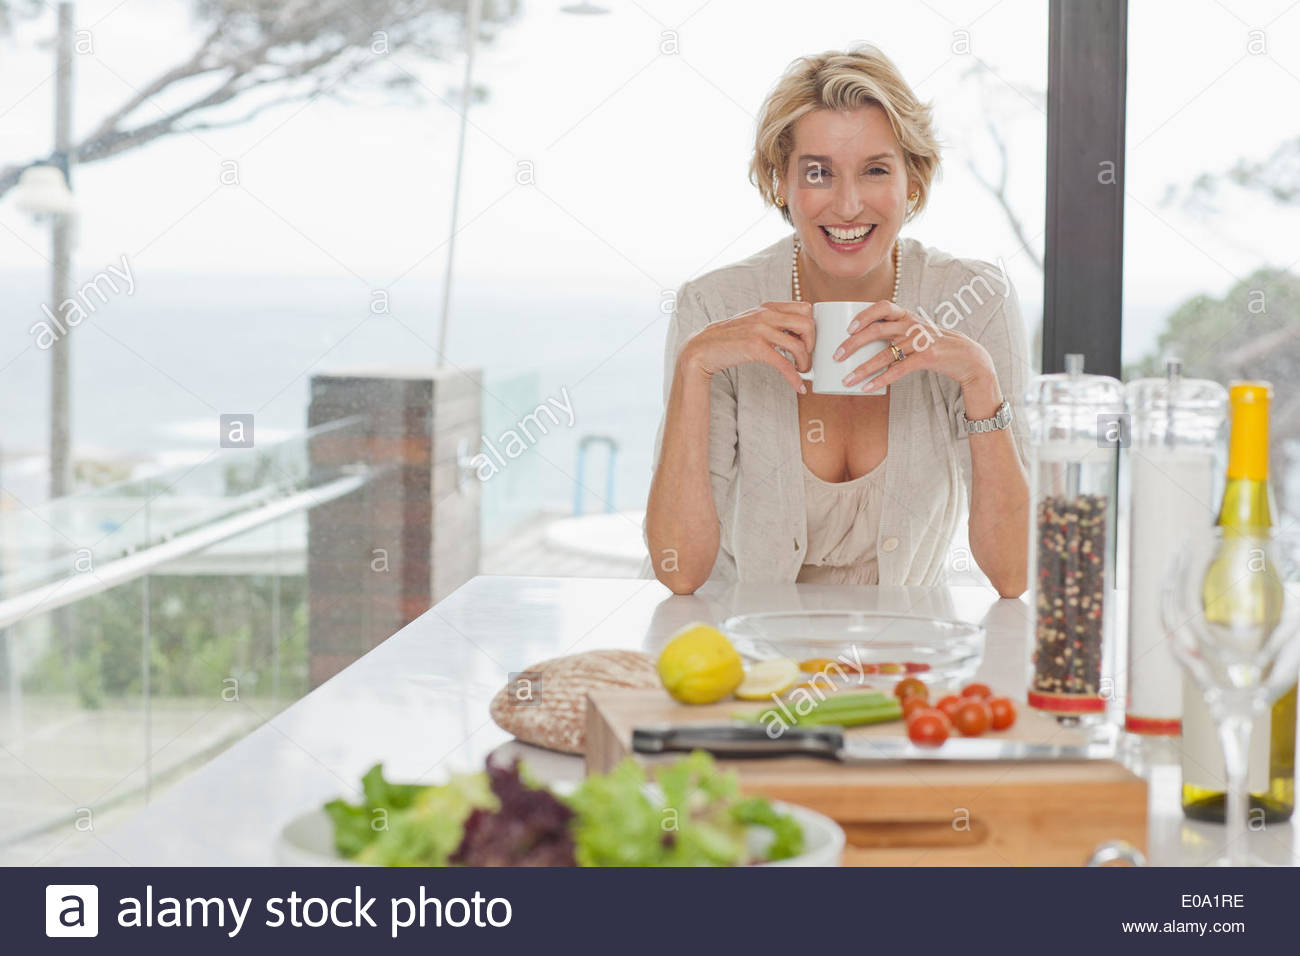 Woman drinking coffee in kitchen Photo Stock